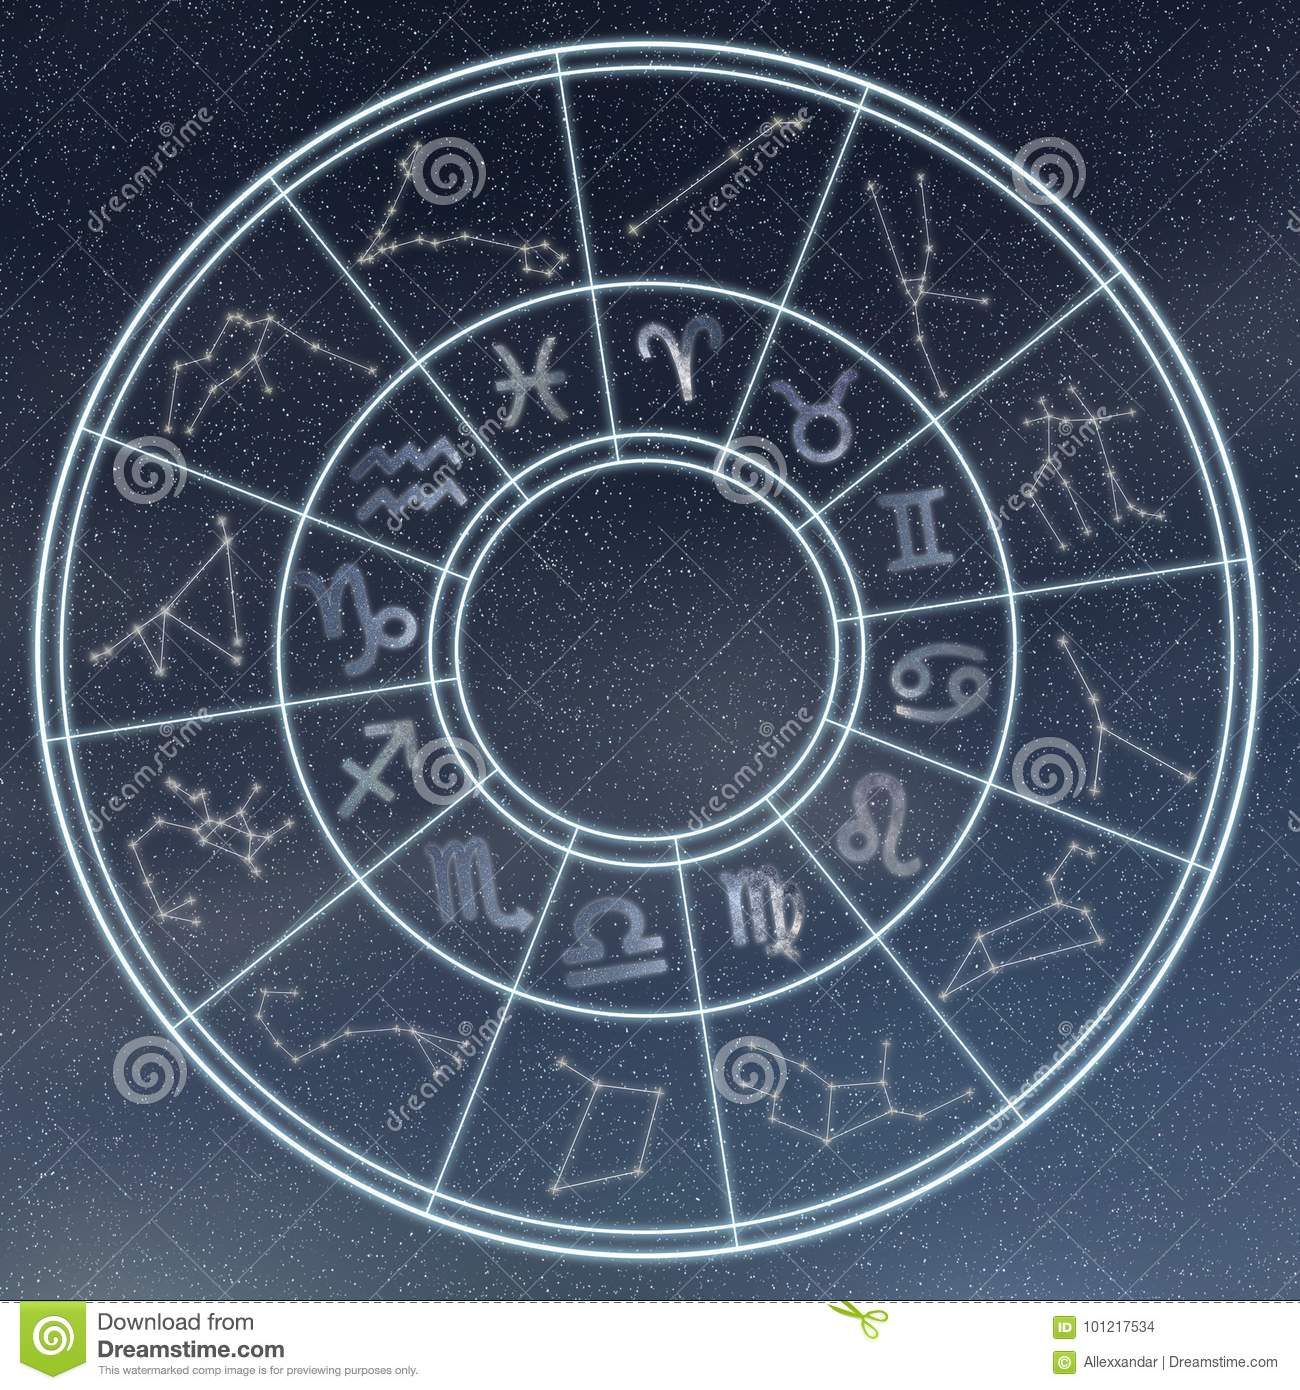 Astrology and horoscopes concept. Astrological zodiac signs in c